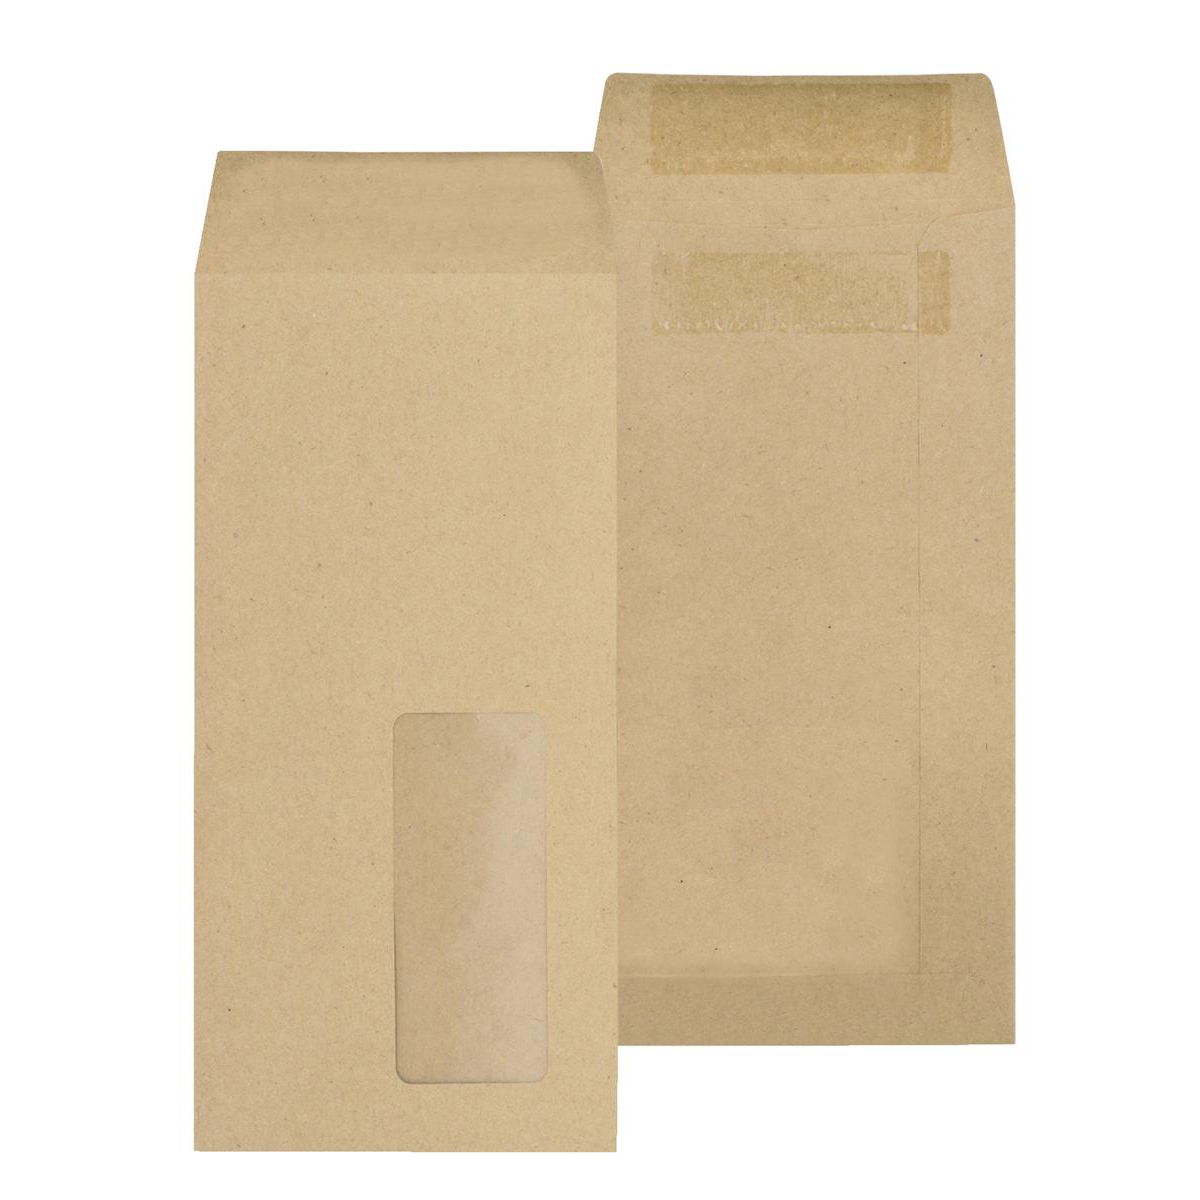 New Guardian Envelopes Pocket Self Seal Window 80gsm DL 220x110mm Manilla Ref D25311 Pack 1000